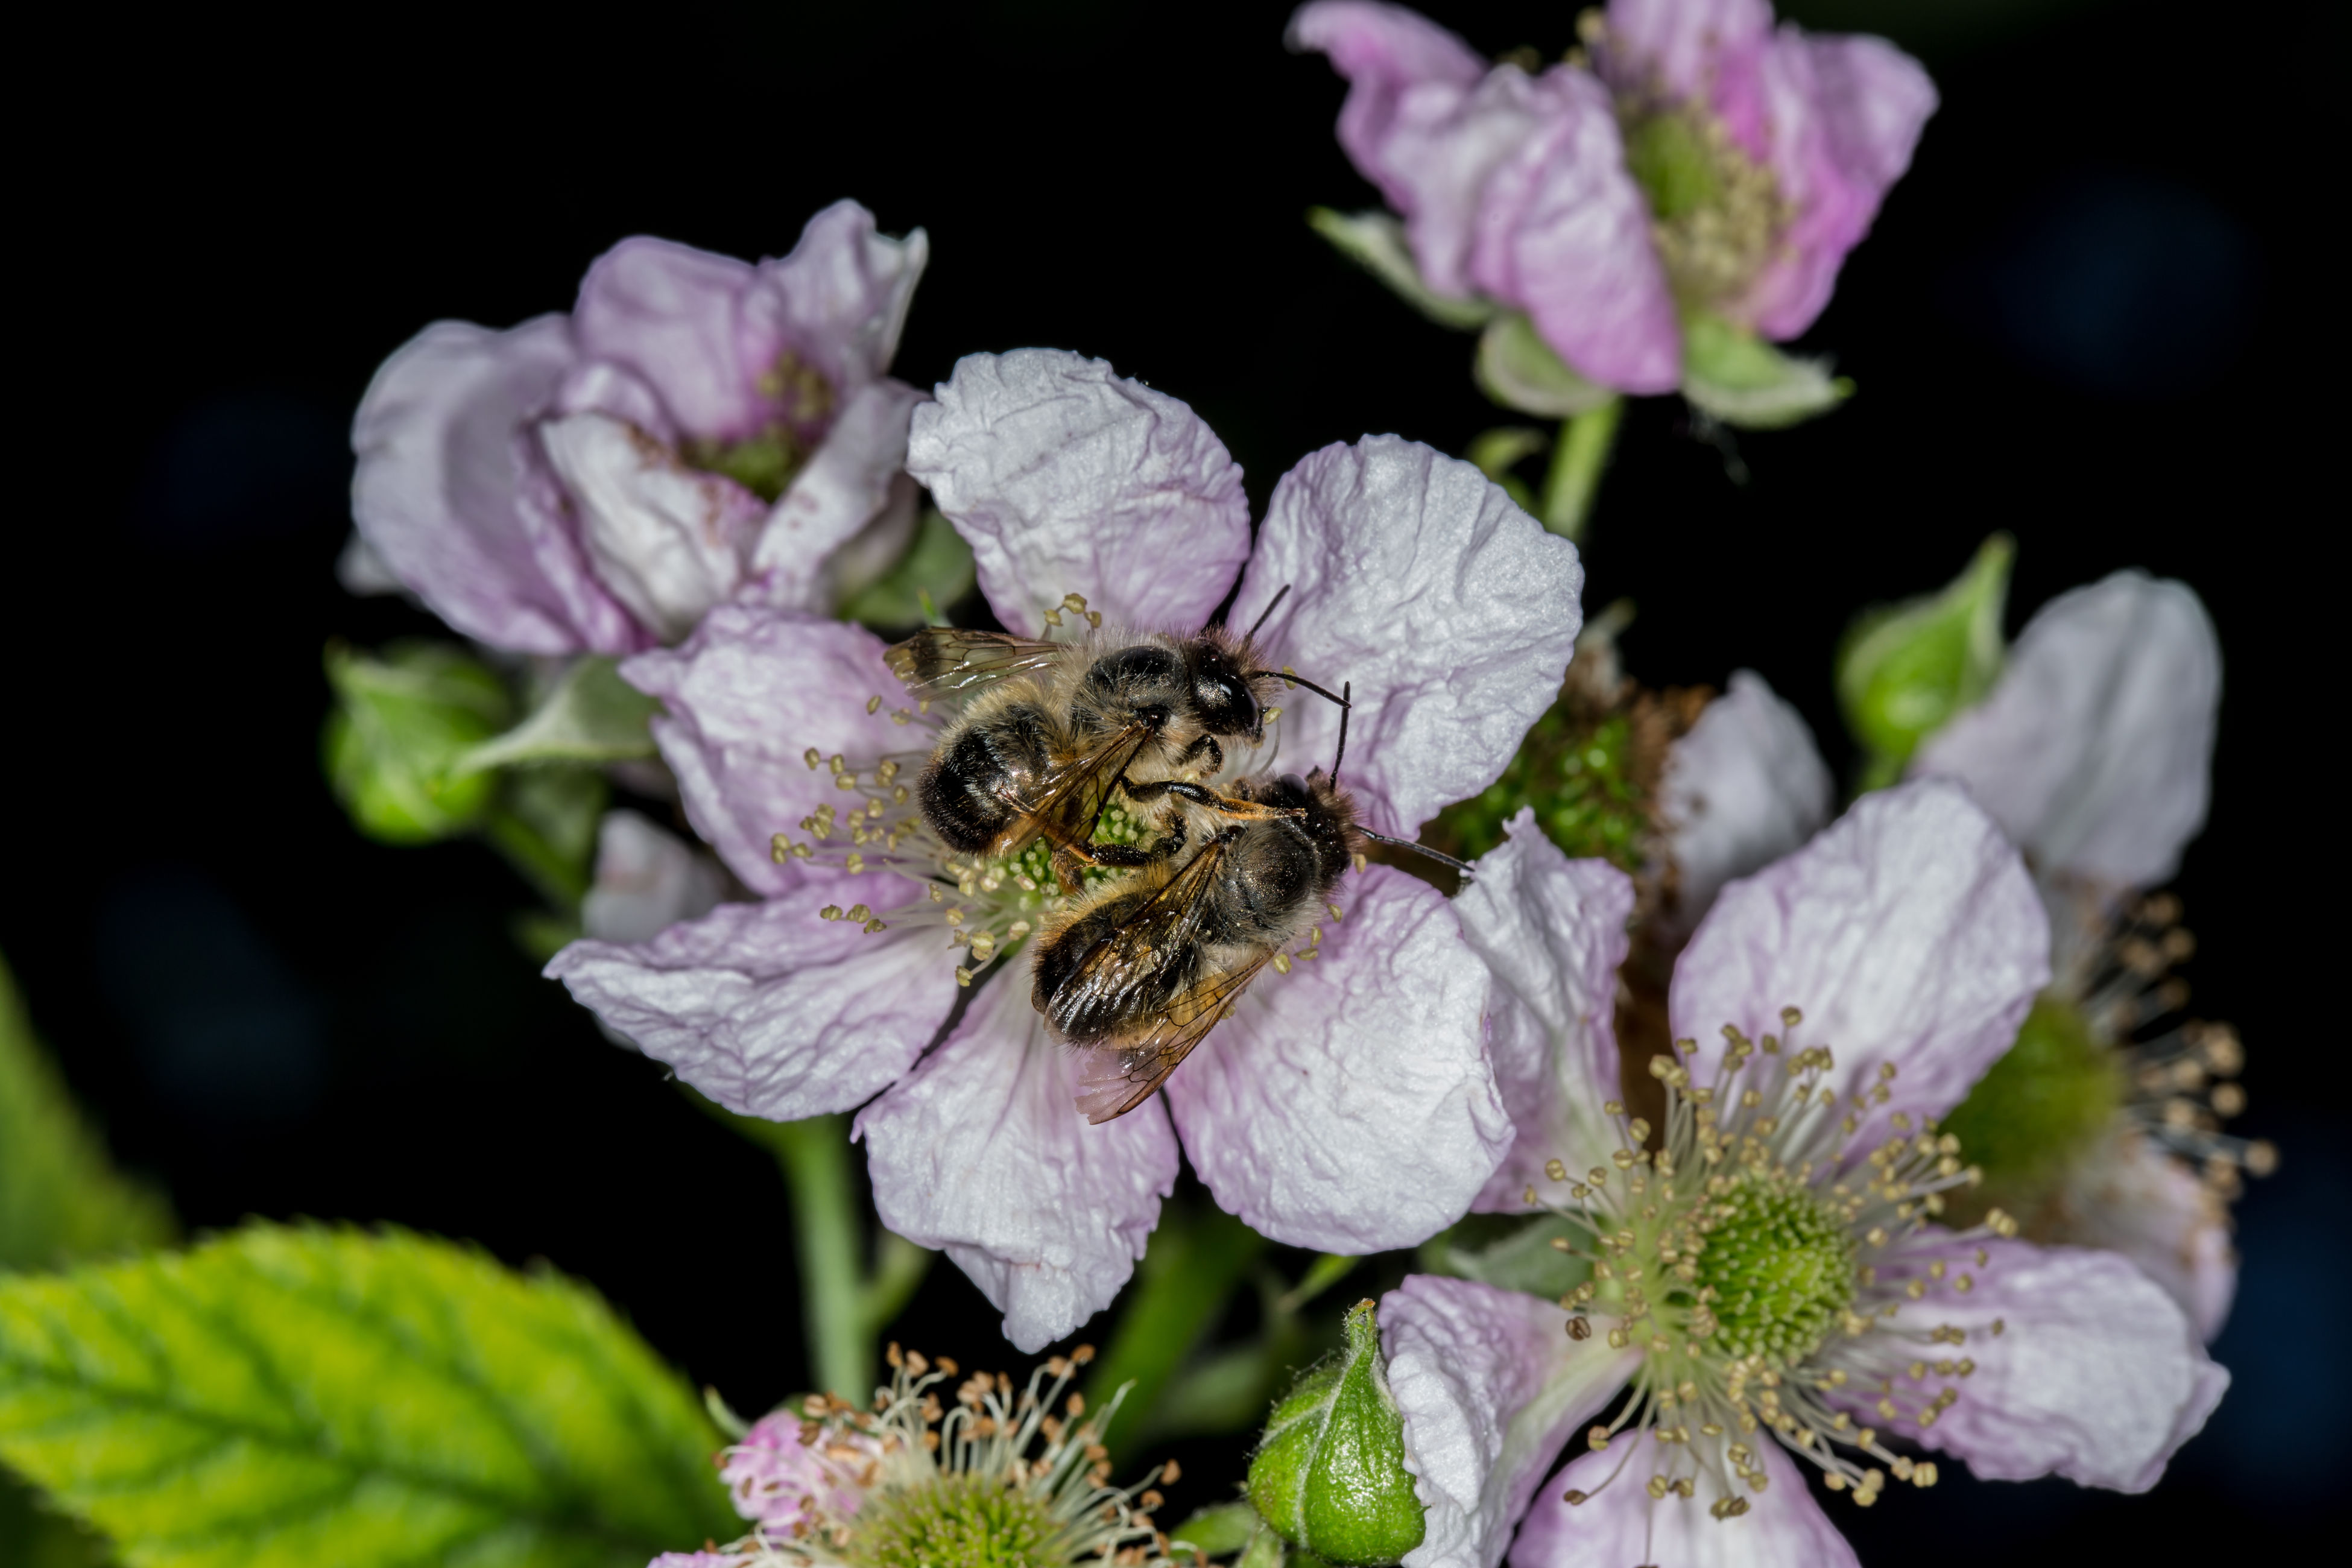 one animal, animal themes, insect, animals in the wild, flower, bee, nature, growth, petal, animal wildlife, honey bee, wildlife, no people, plant, flower head, fragility, pollination, outdoors, day, beauty in nature, close-up, freshness, bumblebee, mammal